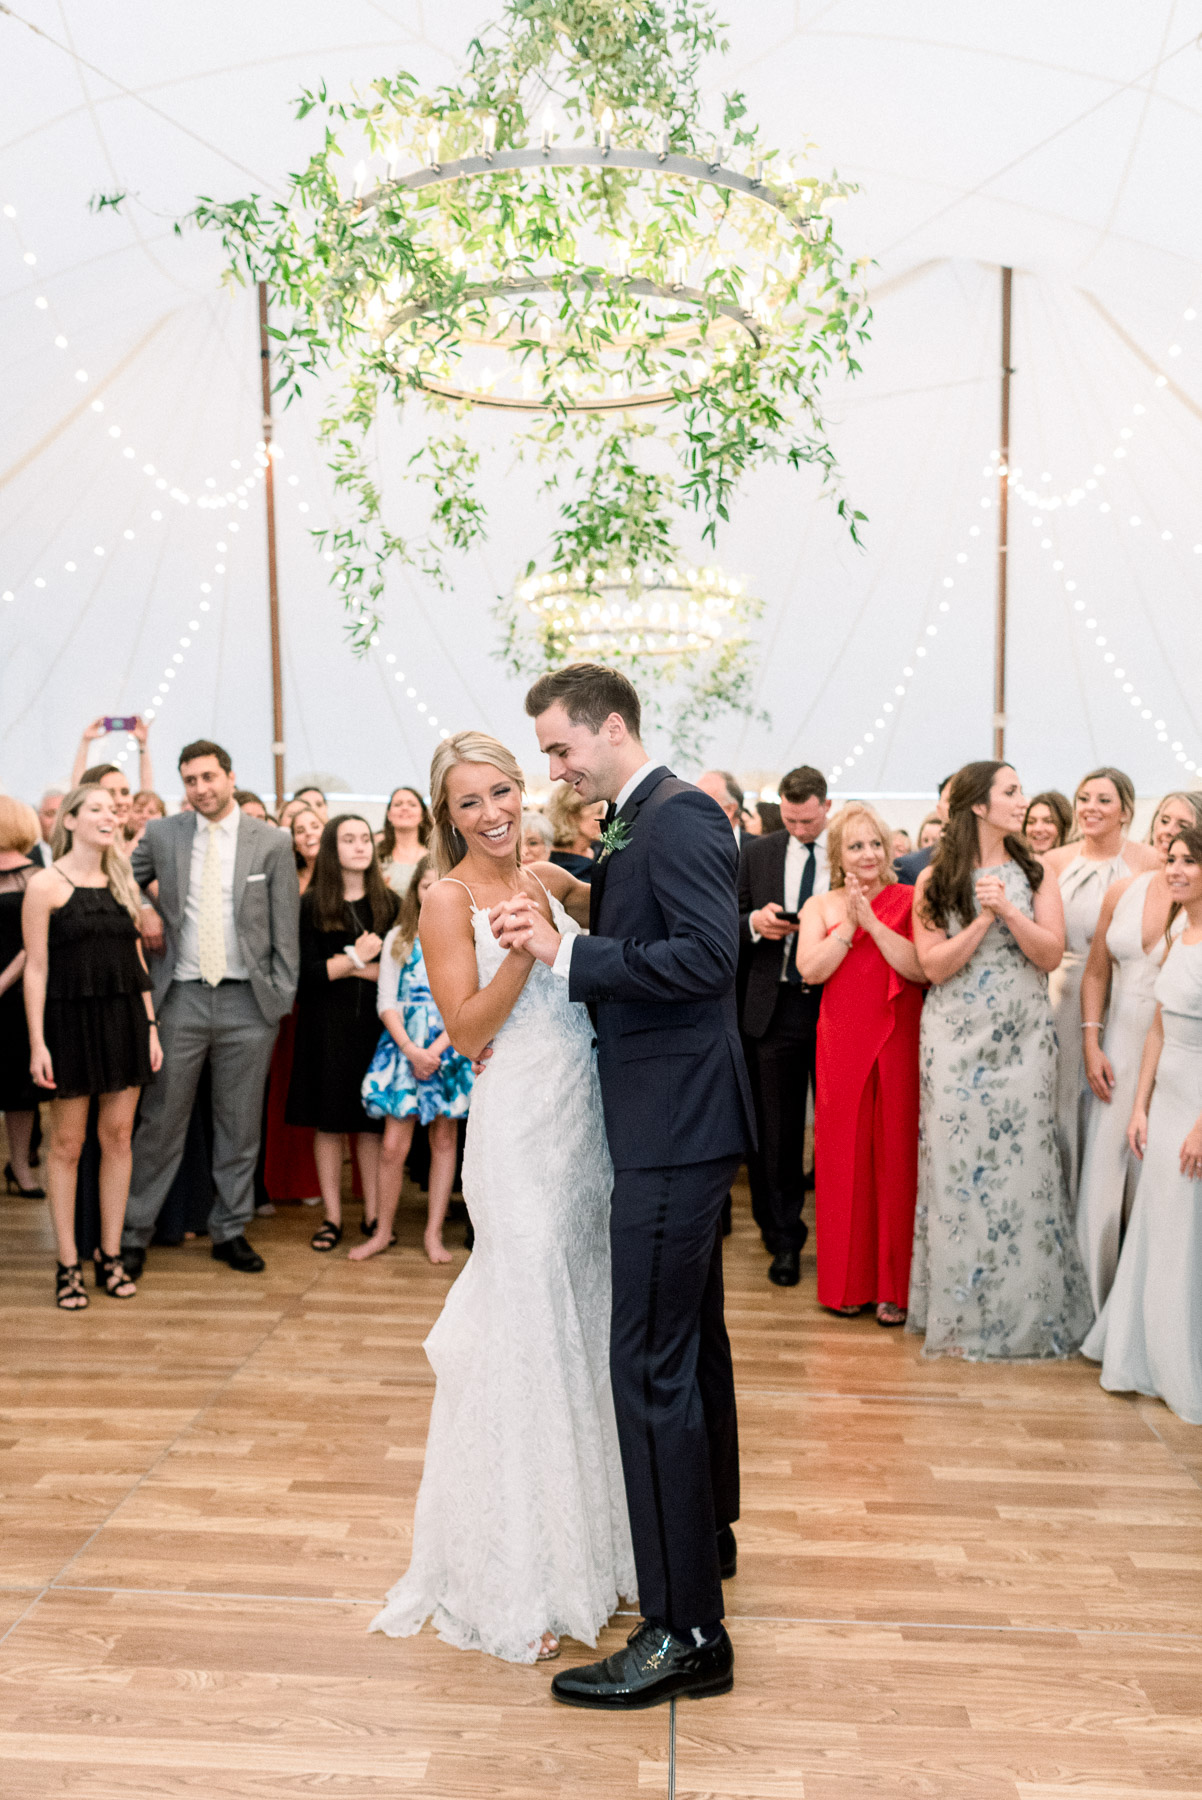 Private Island Upstate NY Wedding by Michelle Lange Photography-77.jpg